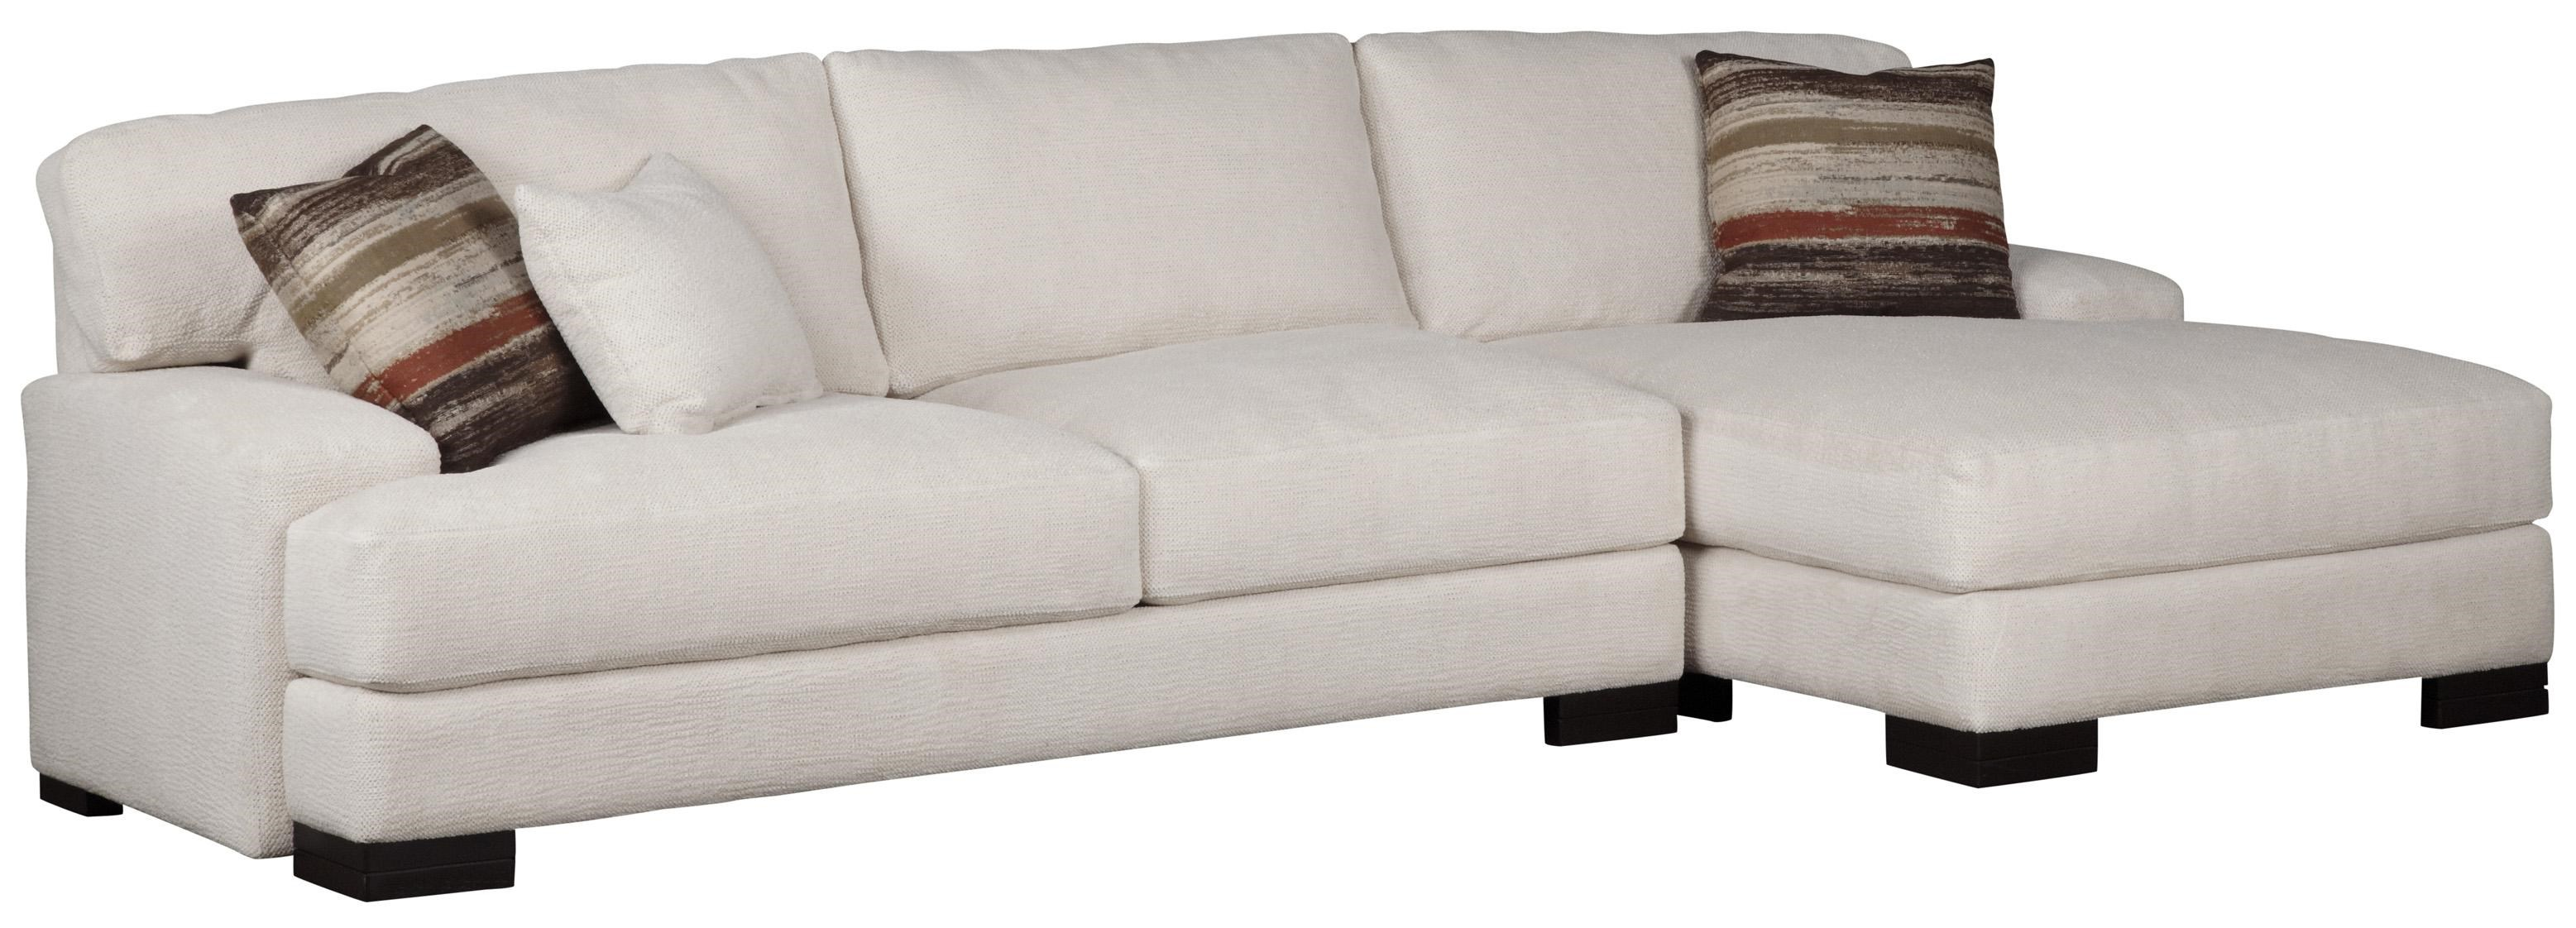 Attrayant Jonathan Louis Burton Sectional With Chaise ...